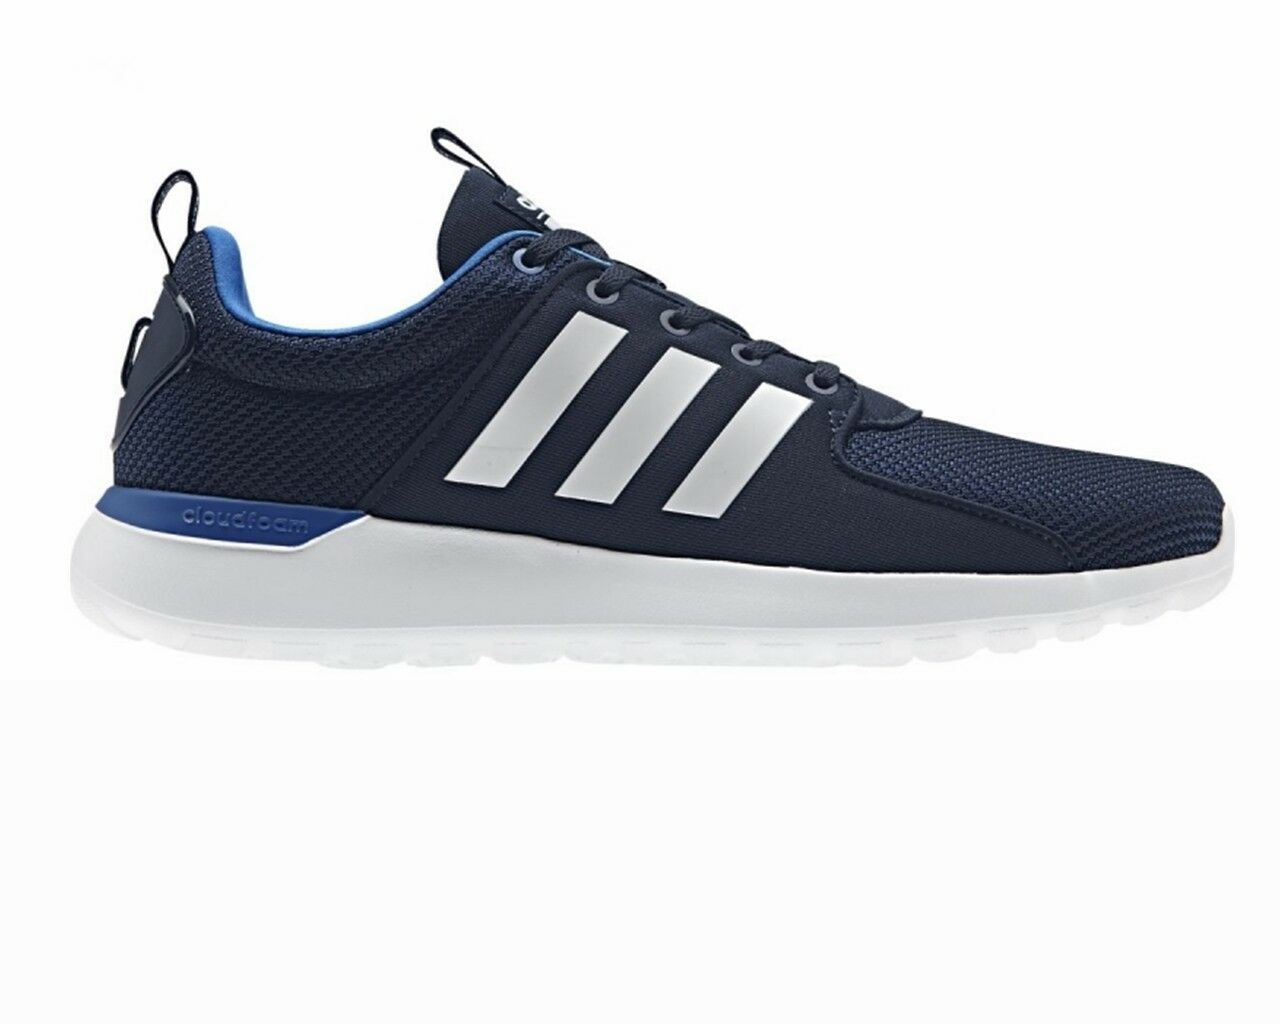 Adidas Cloudfoam CF Light Racer DB9821 Mens Trainers bluee